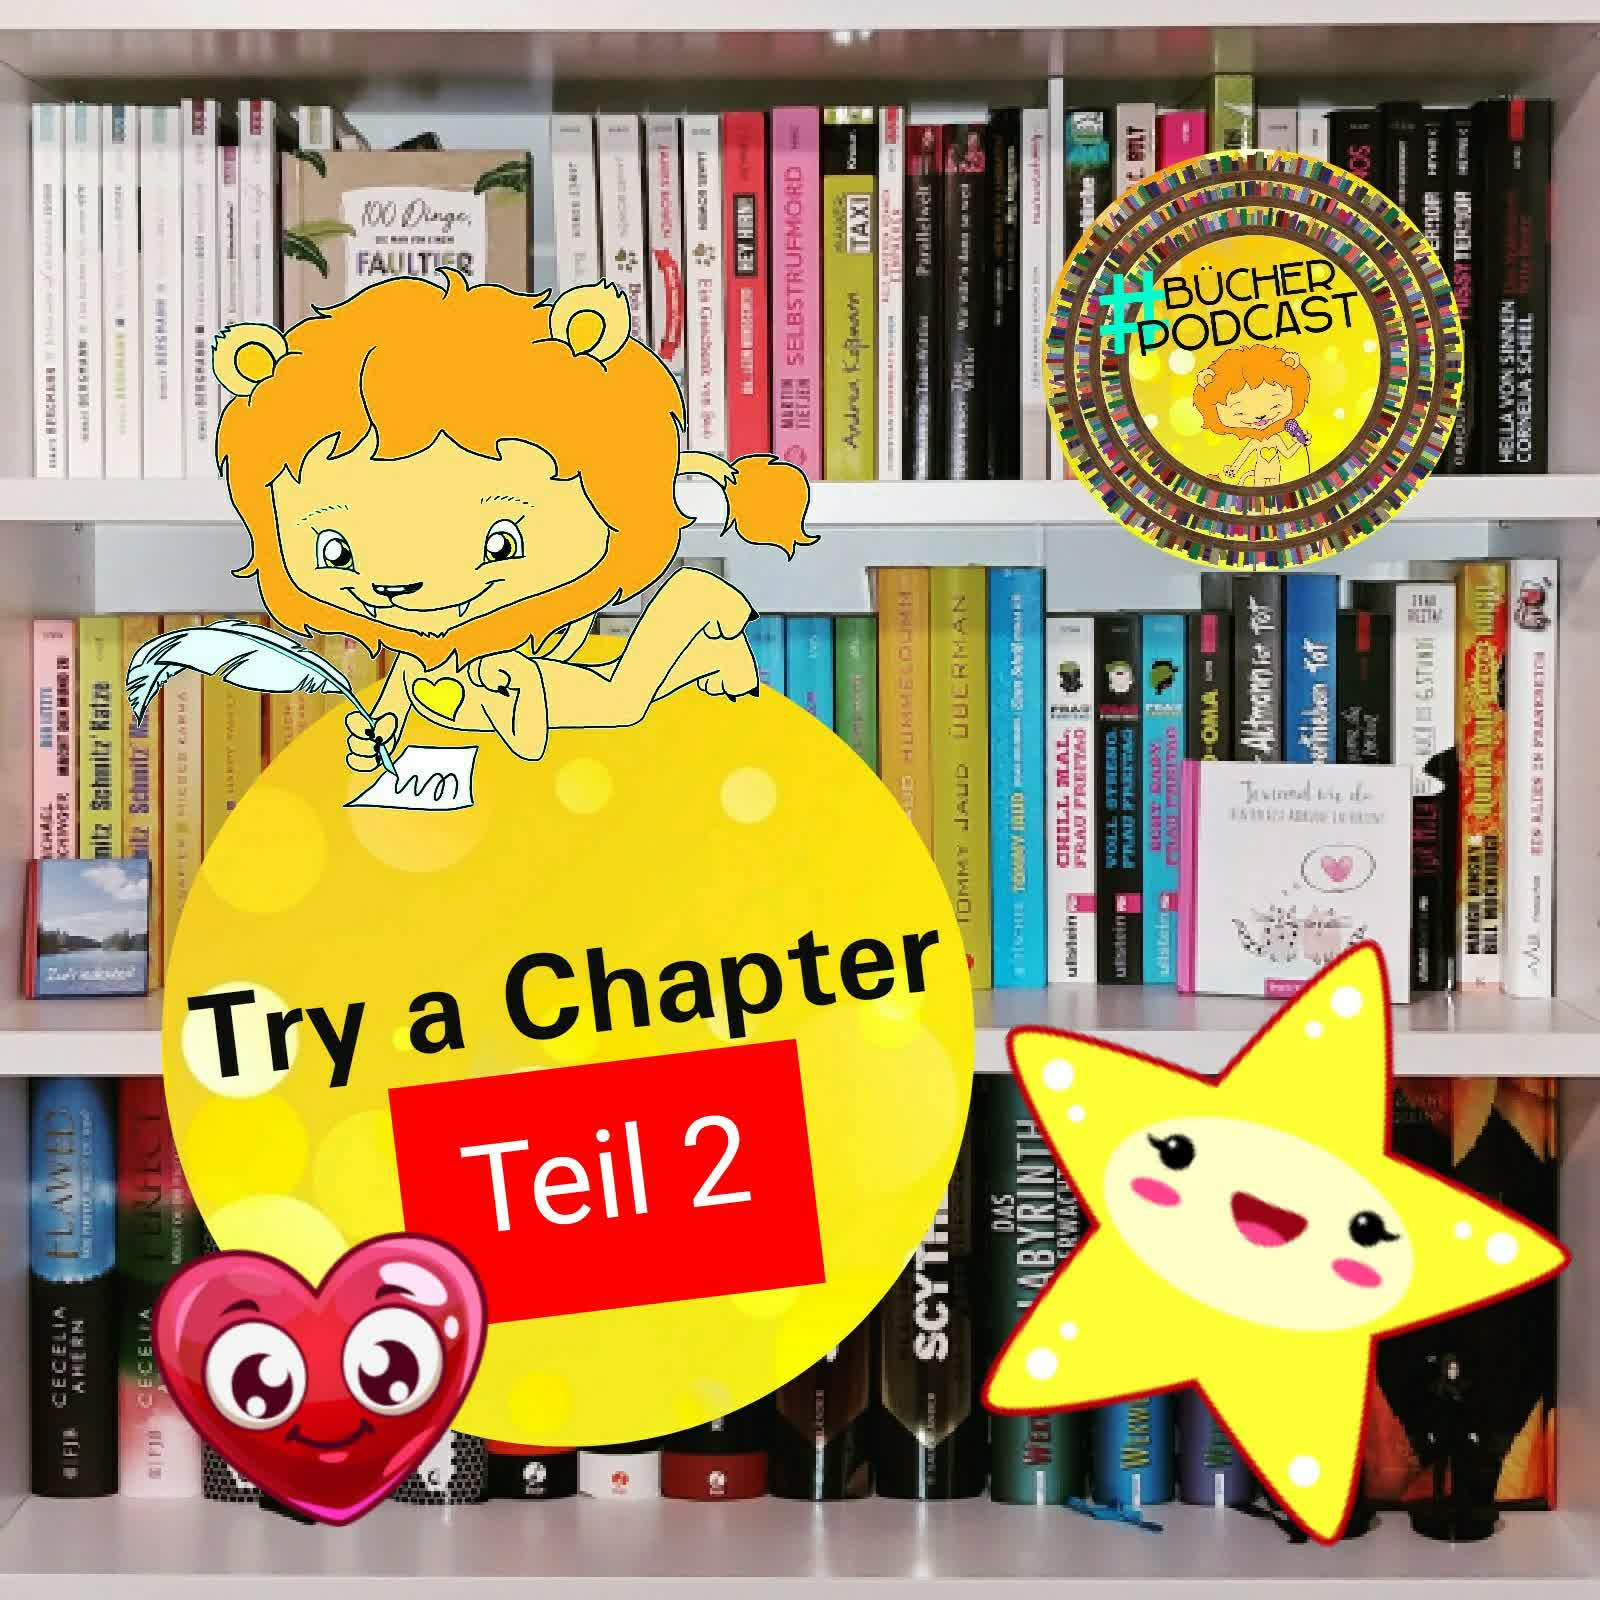 Try a Chapter - Teil 2